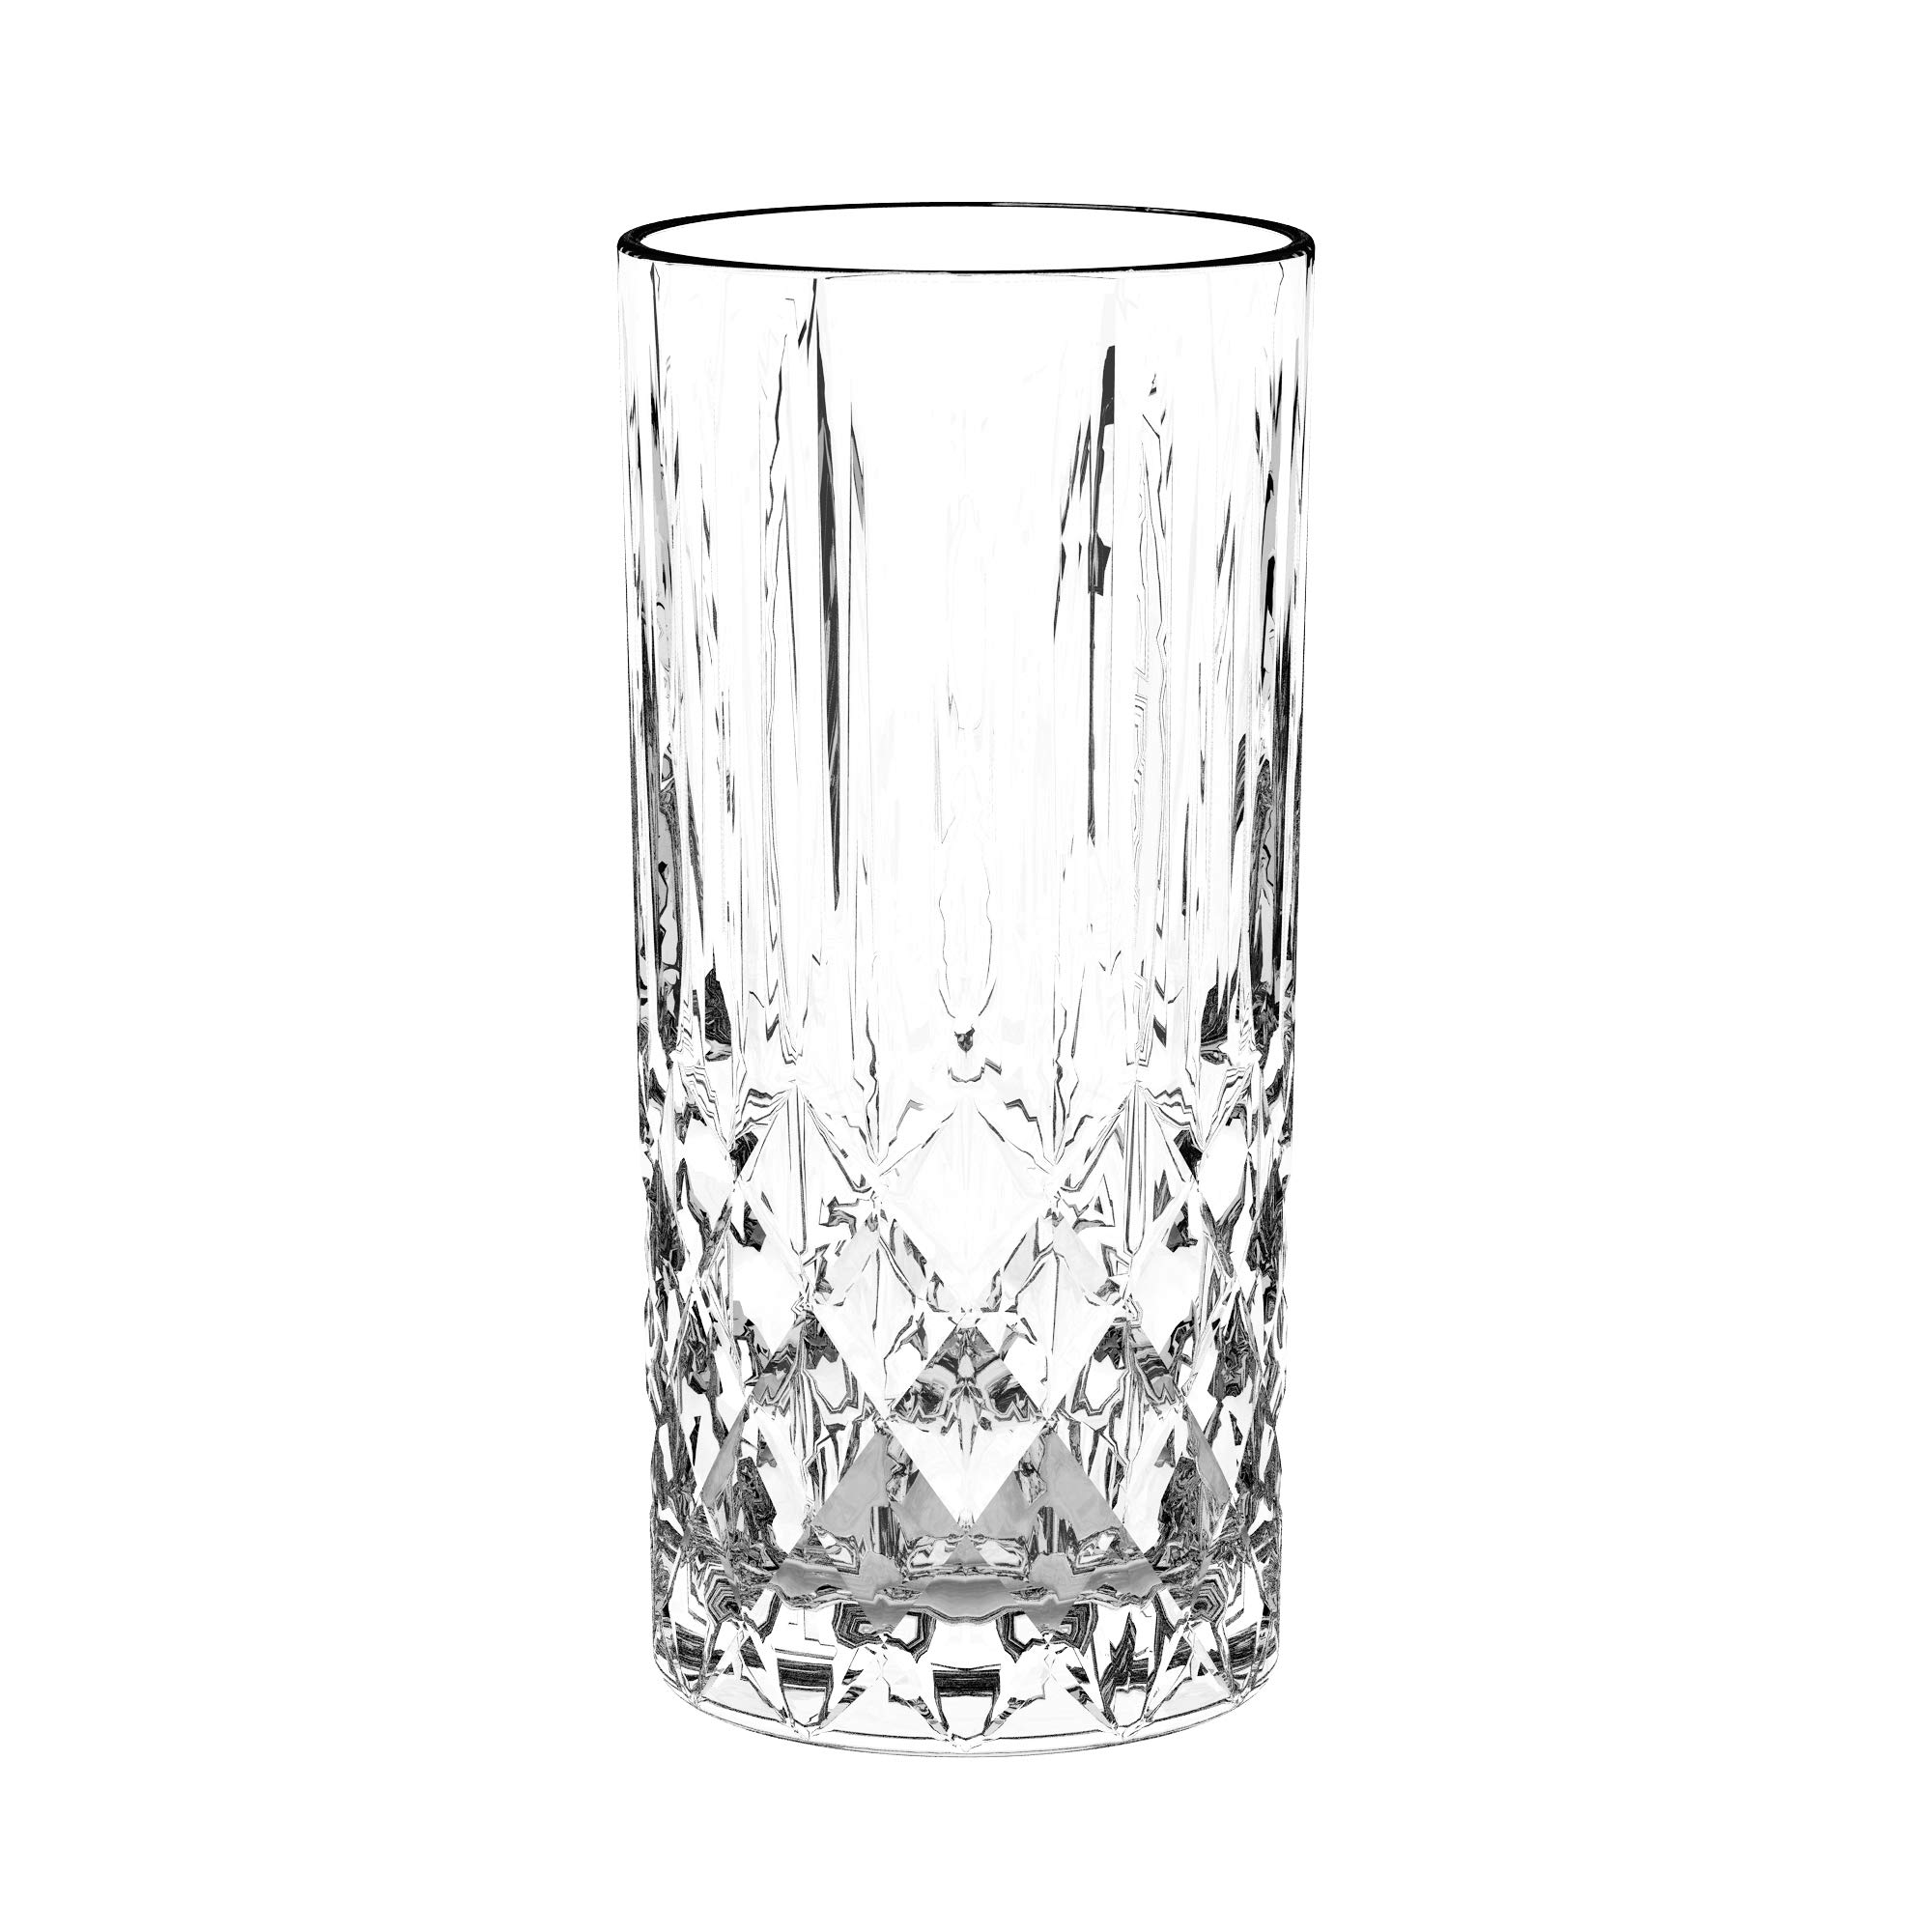 Highball - Glass - Set of 6 Hiball Glasses - Lead Free Crystal - Beautiful Designed Drinking Tumblers for Water, Juice, Wine, Beer, and Cocktails - Tumbler is 13 oz. - Made in Europe